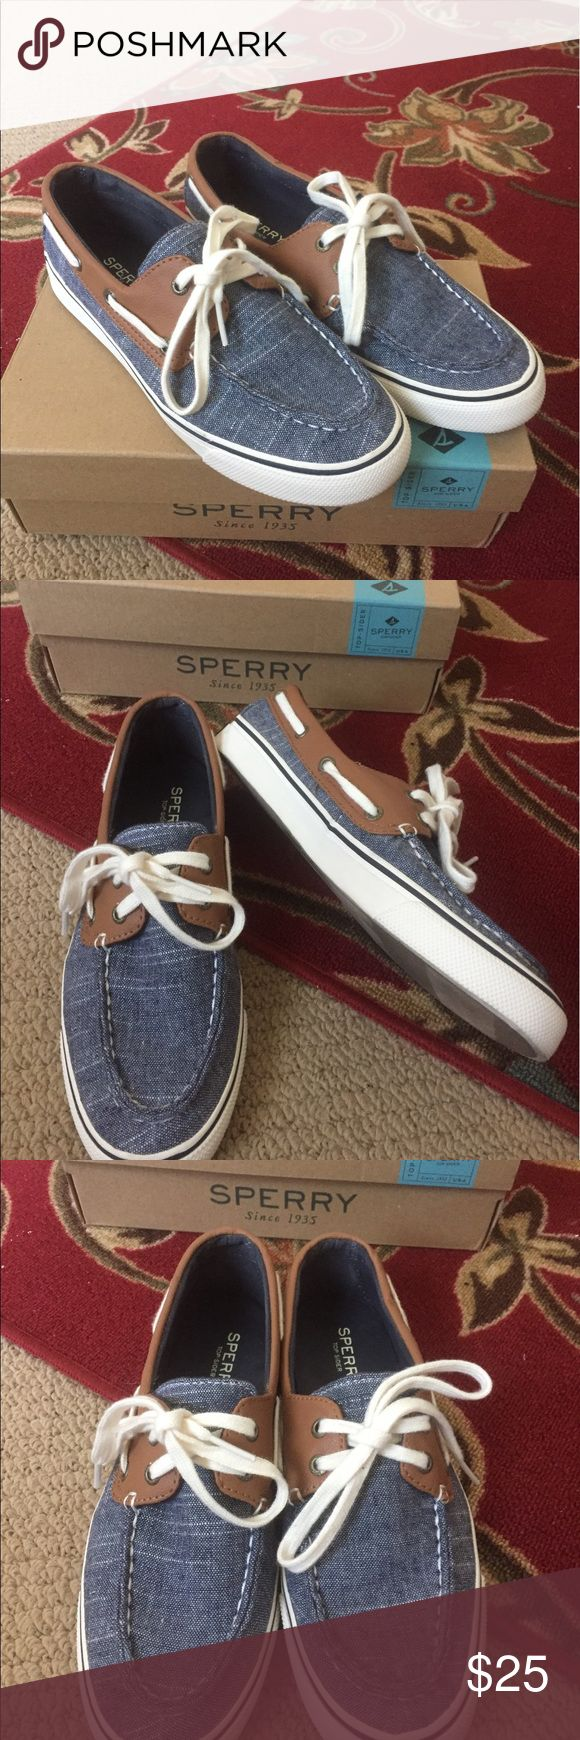 CUTE Sperry Top Sider Shoes, 6.5, Like NEW!! CUTE Sperry Top Sider Shoes, 6.5, Like NEW!! CUTE Sperry Top Sider Shoes, 6.5, Like NEW!! Color: : Biscayne, Chambray & White. Slip on with tie. Super CUTE ~ worn once ~ absolutely PERFECT! Sperry Top-Sider Shoes Flats & Loafers